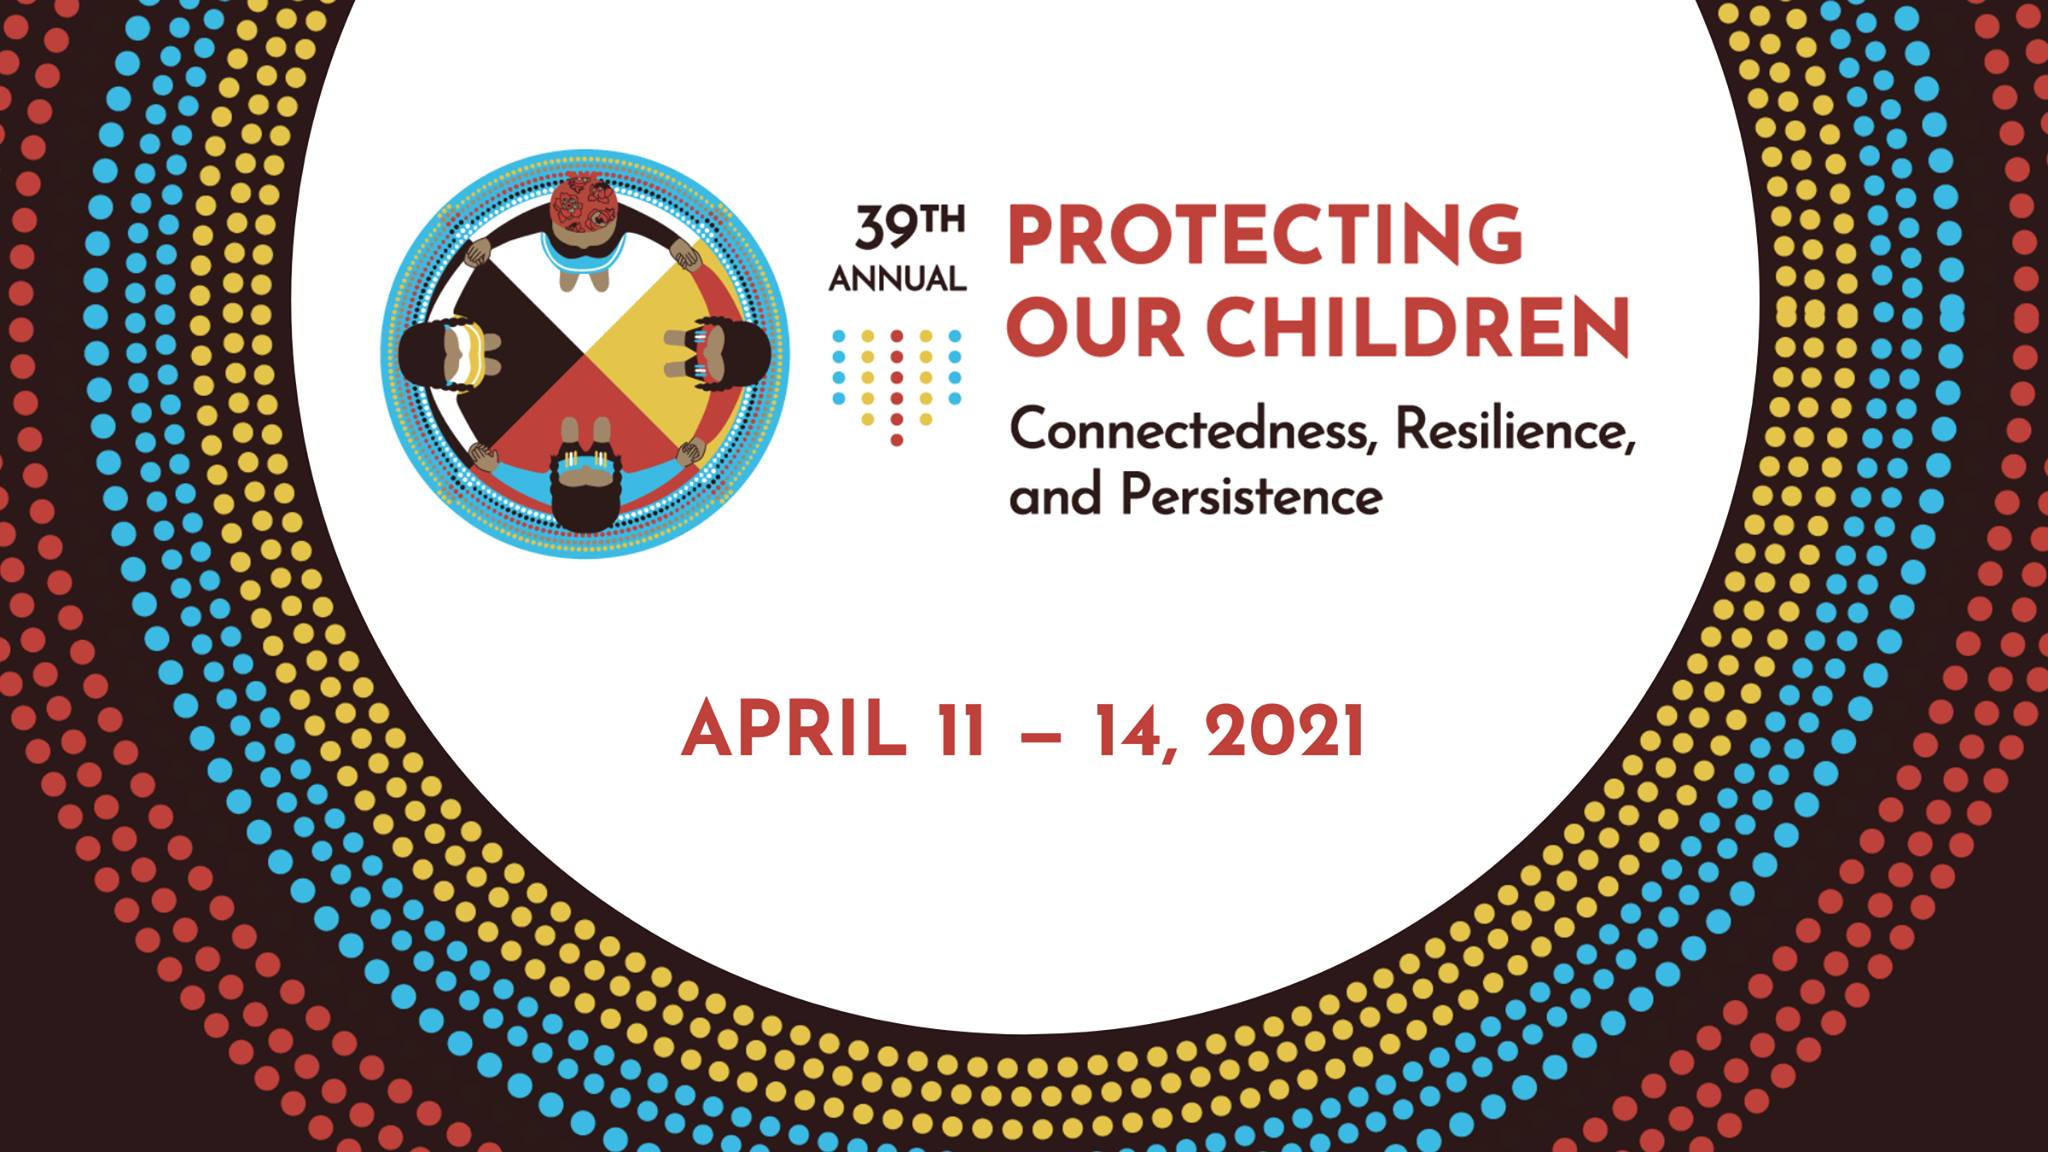 NICWA Protecting Our Children 39th Annual Event Logo